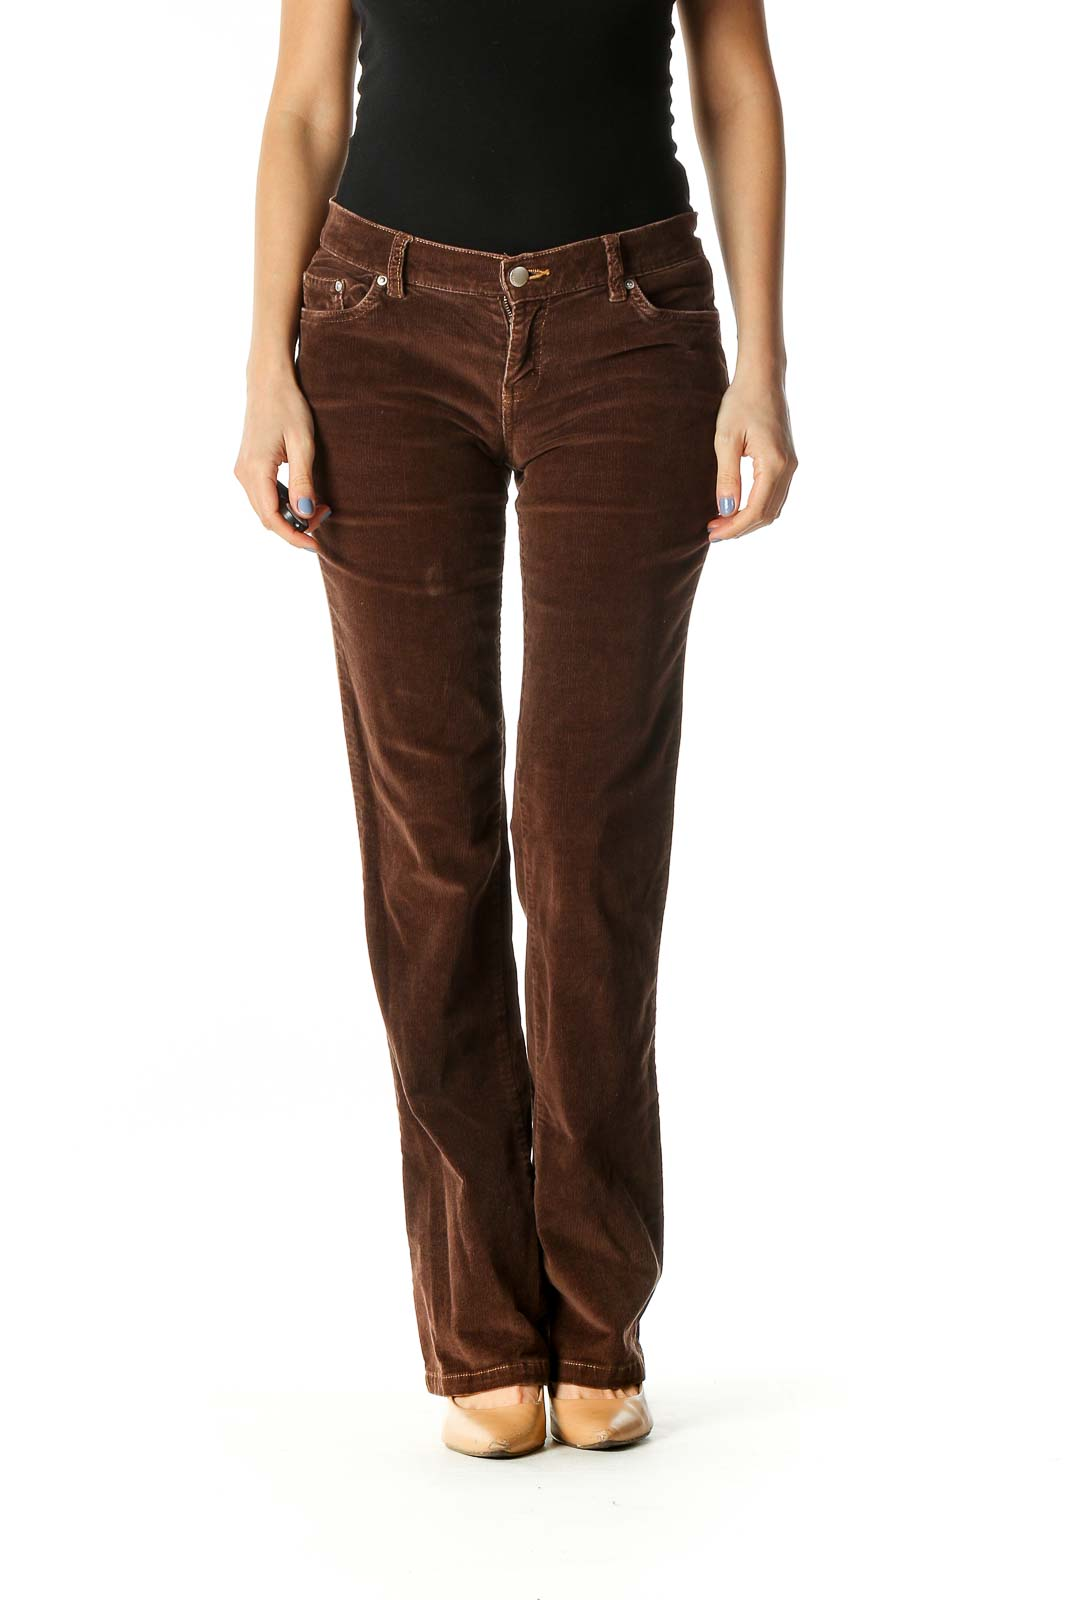 Brown Casual Bootcut Jeans Front